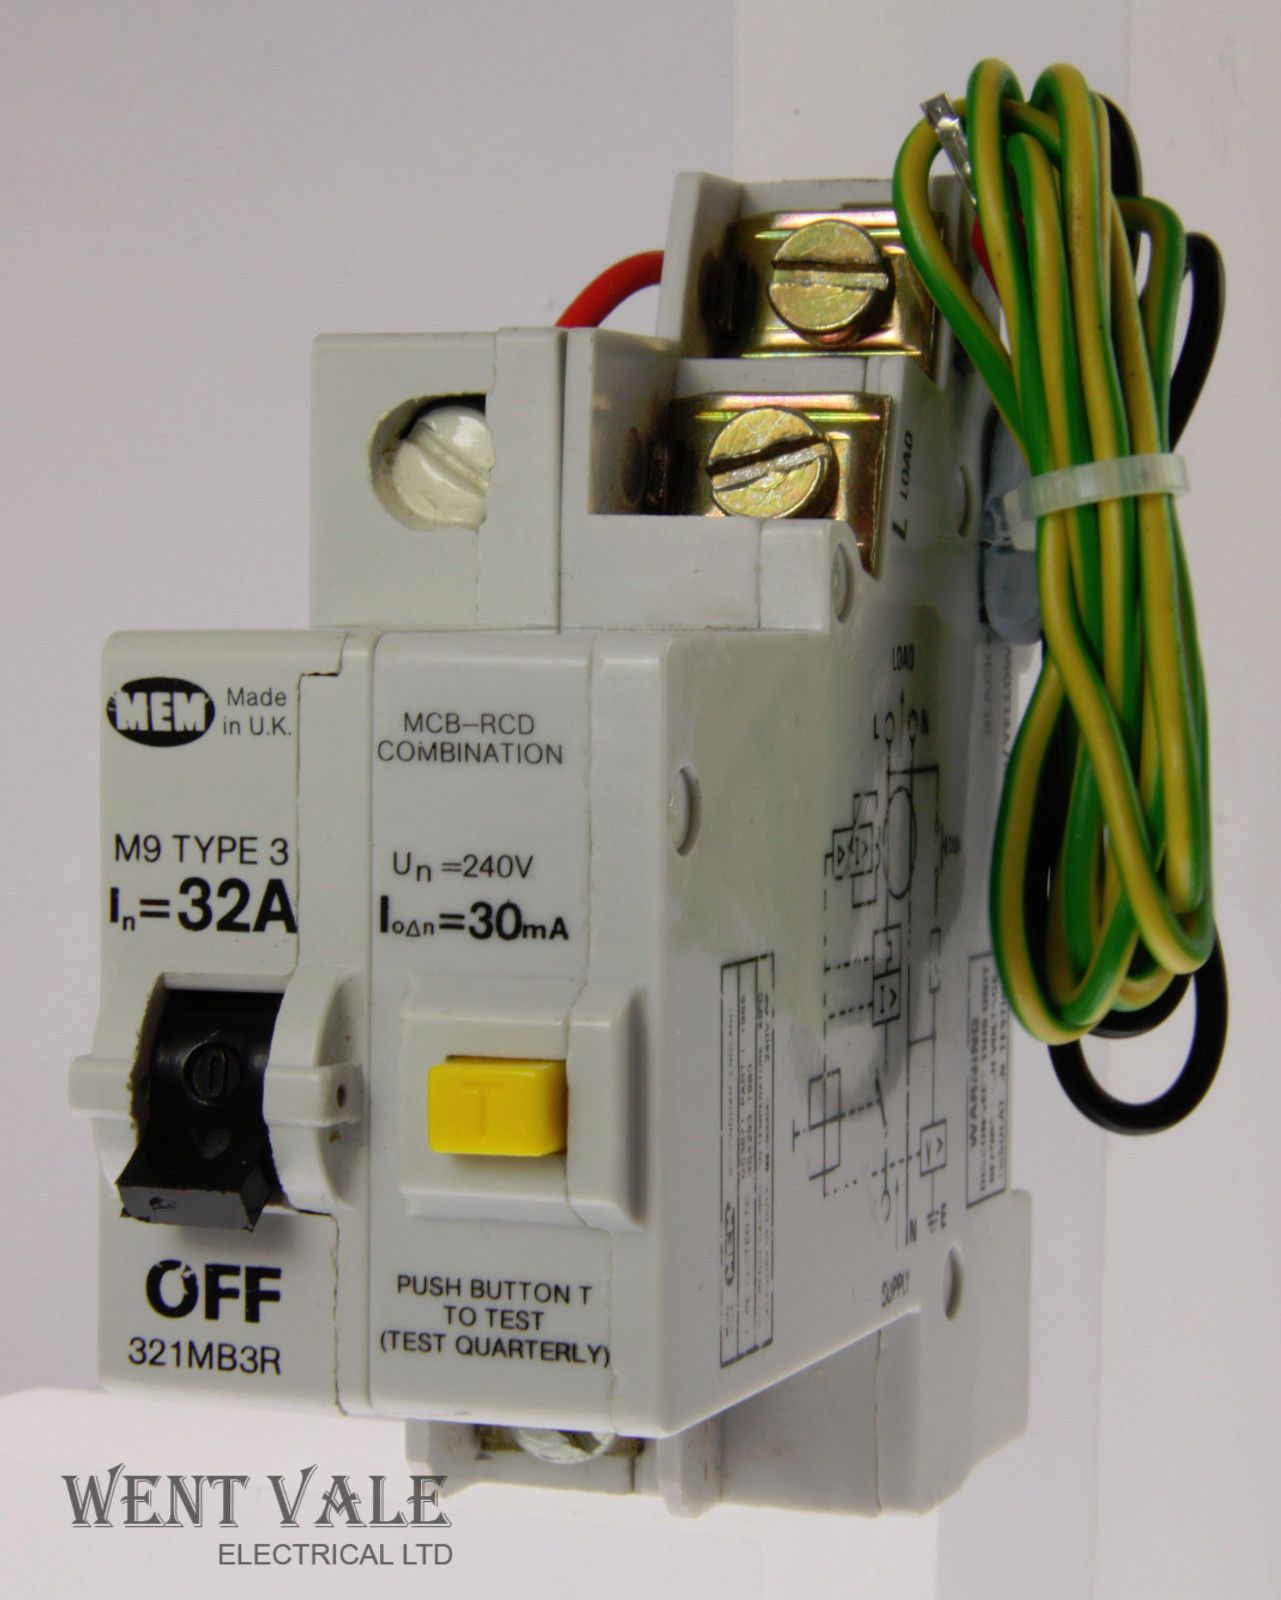 Mem Fuse Box Mcb Free Download Wylex Circuit Breakers To Replace Rewire Fuses Mini Trip Plug Memshield 1 321mb3r 32a 30ma Type 3 Rcd Combo New In Types